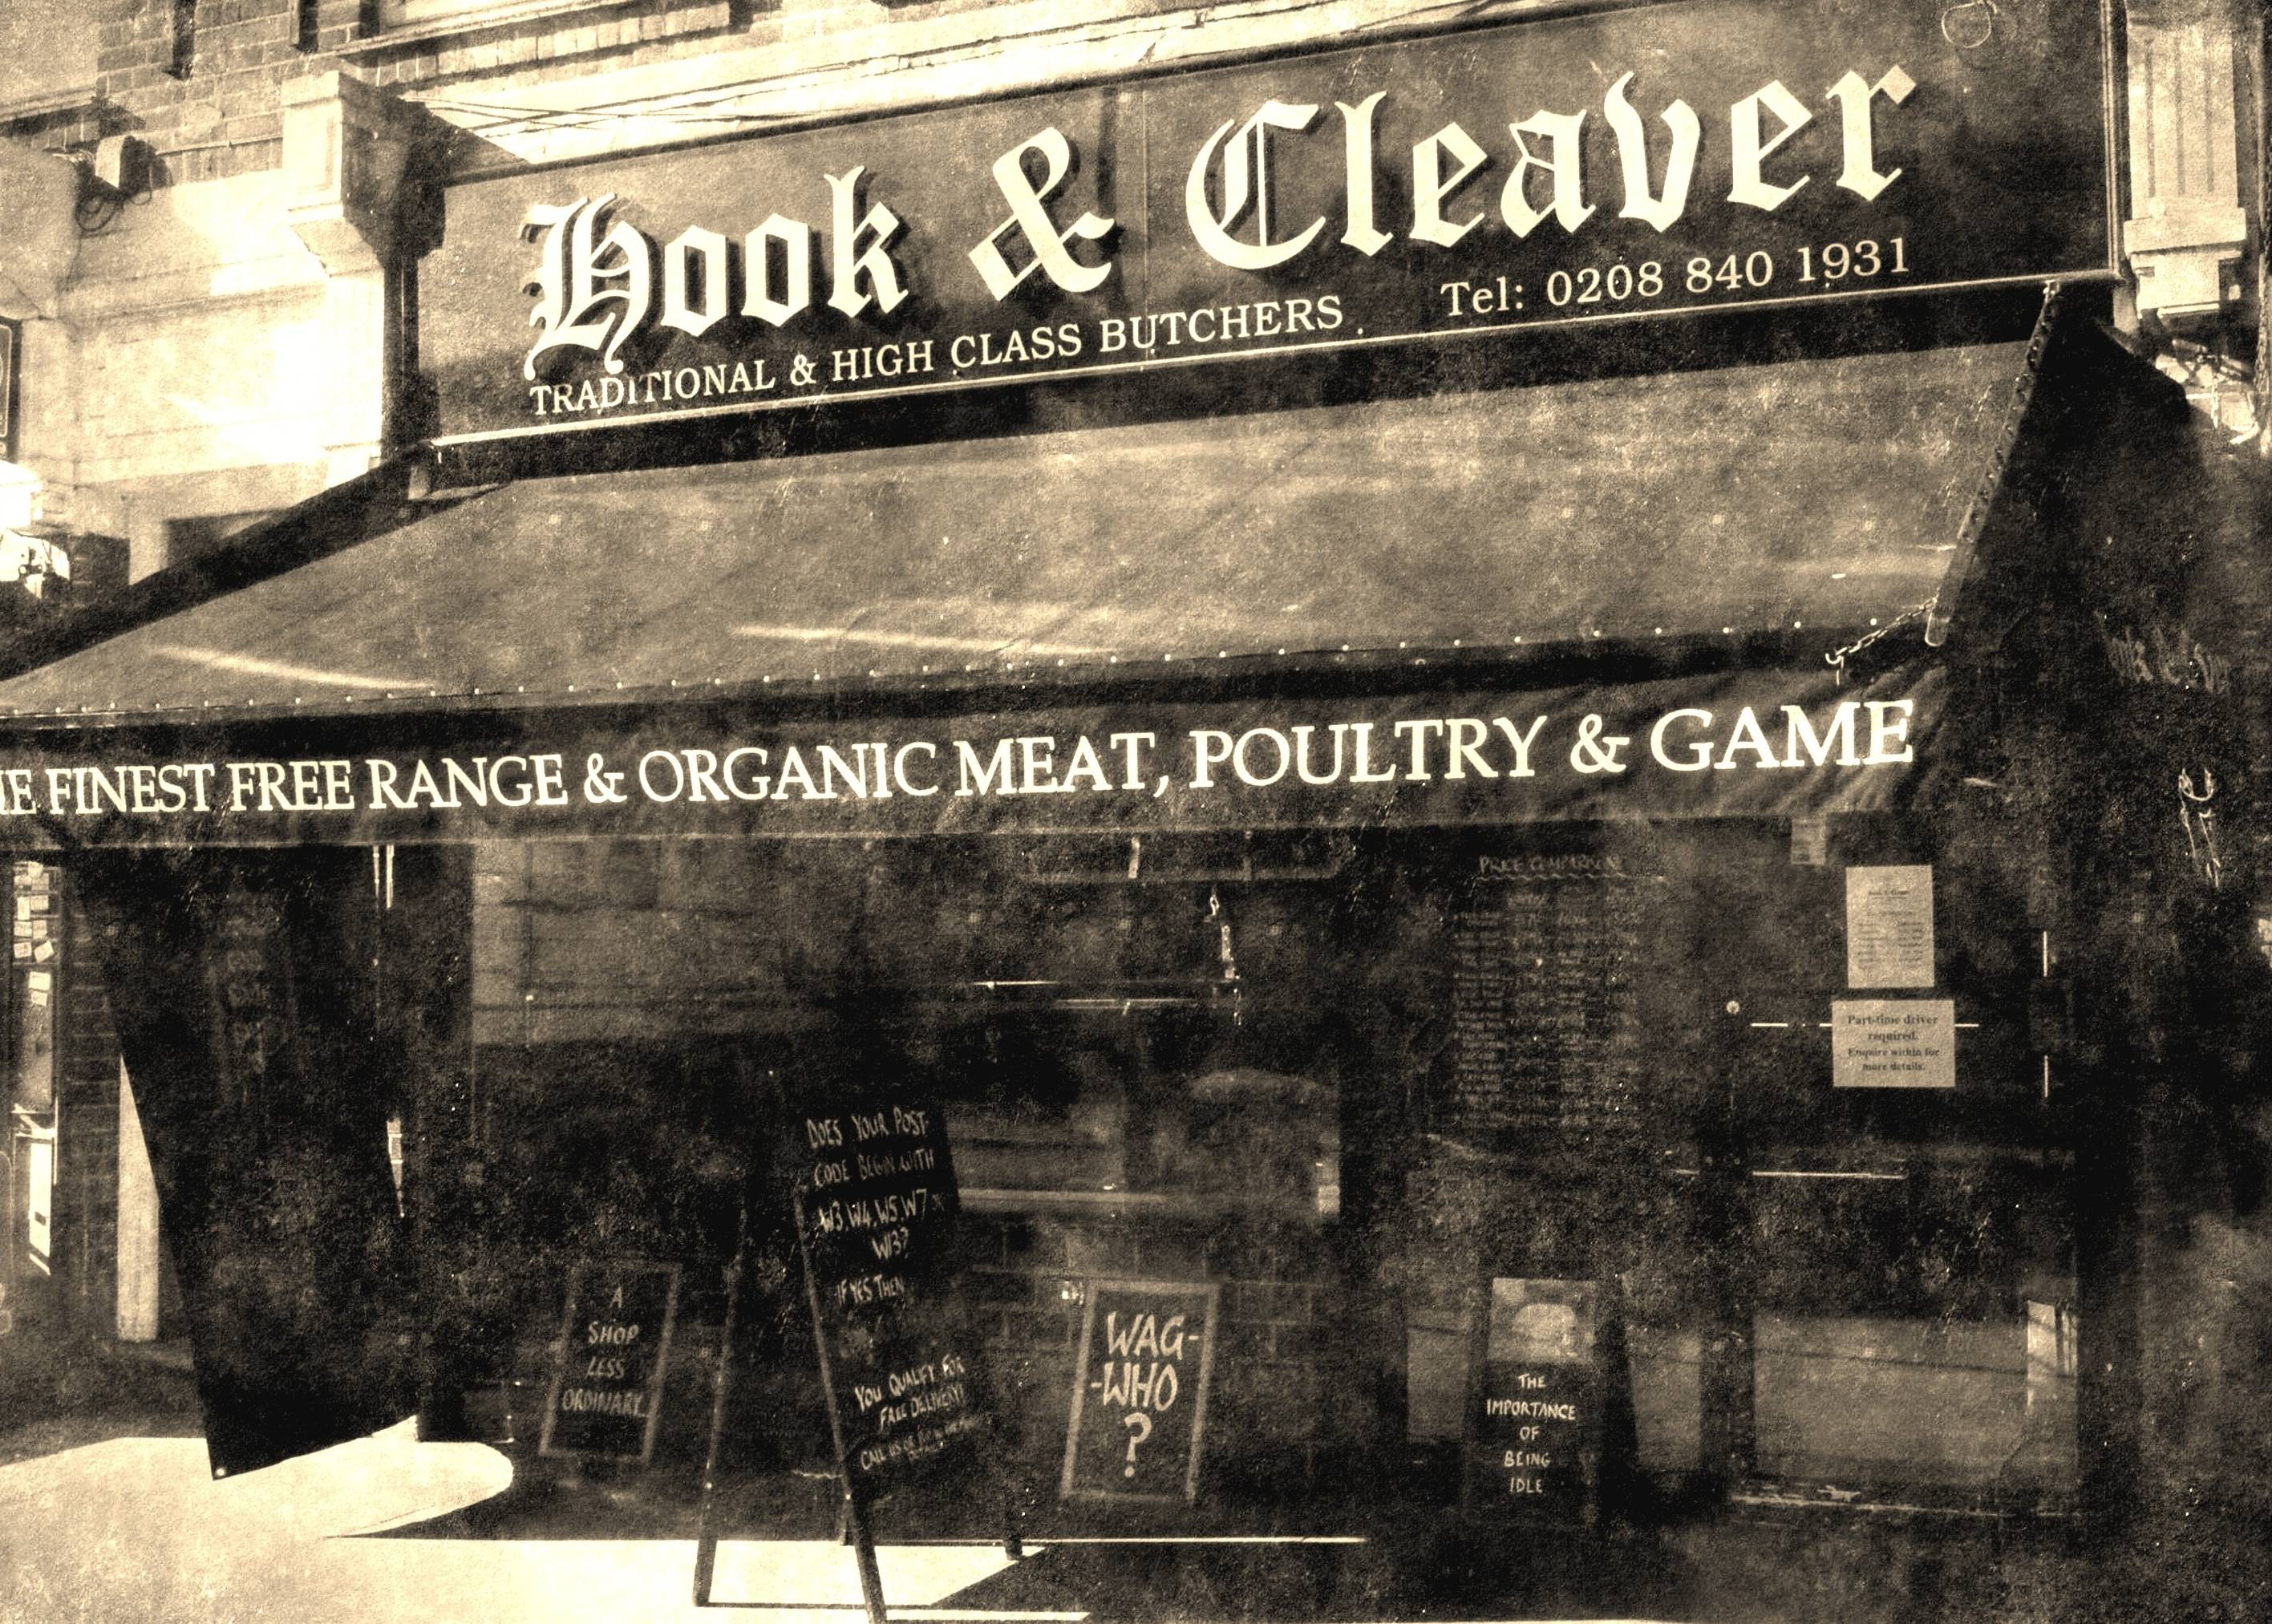 Image with link to Hook & Cleaver butchers